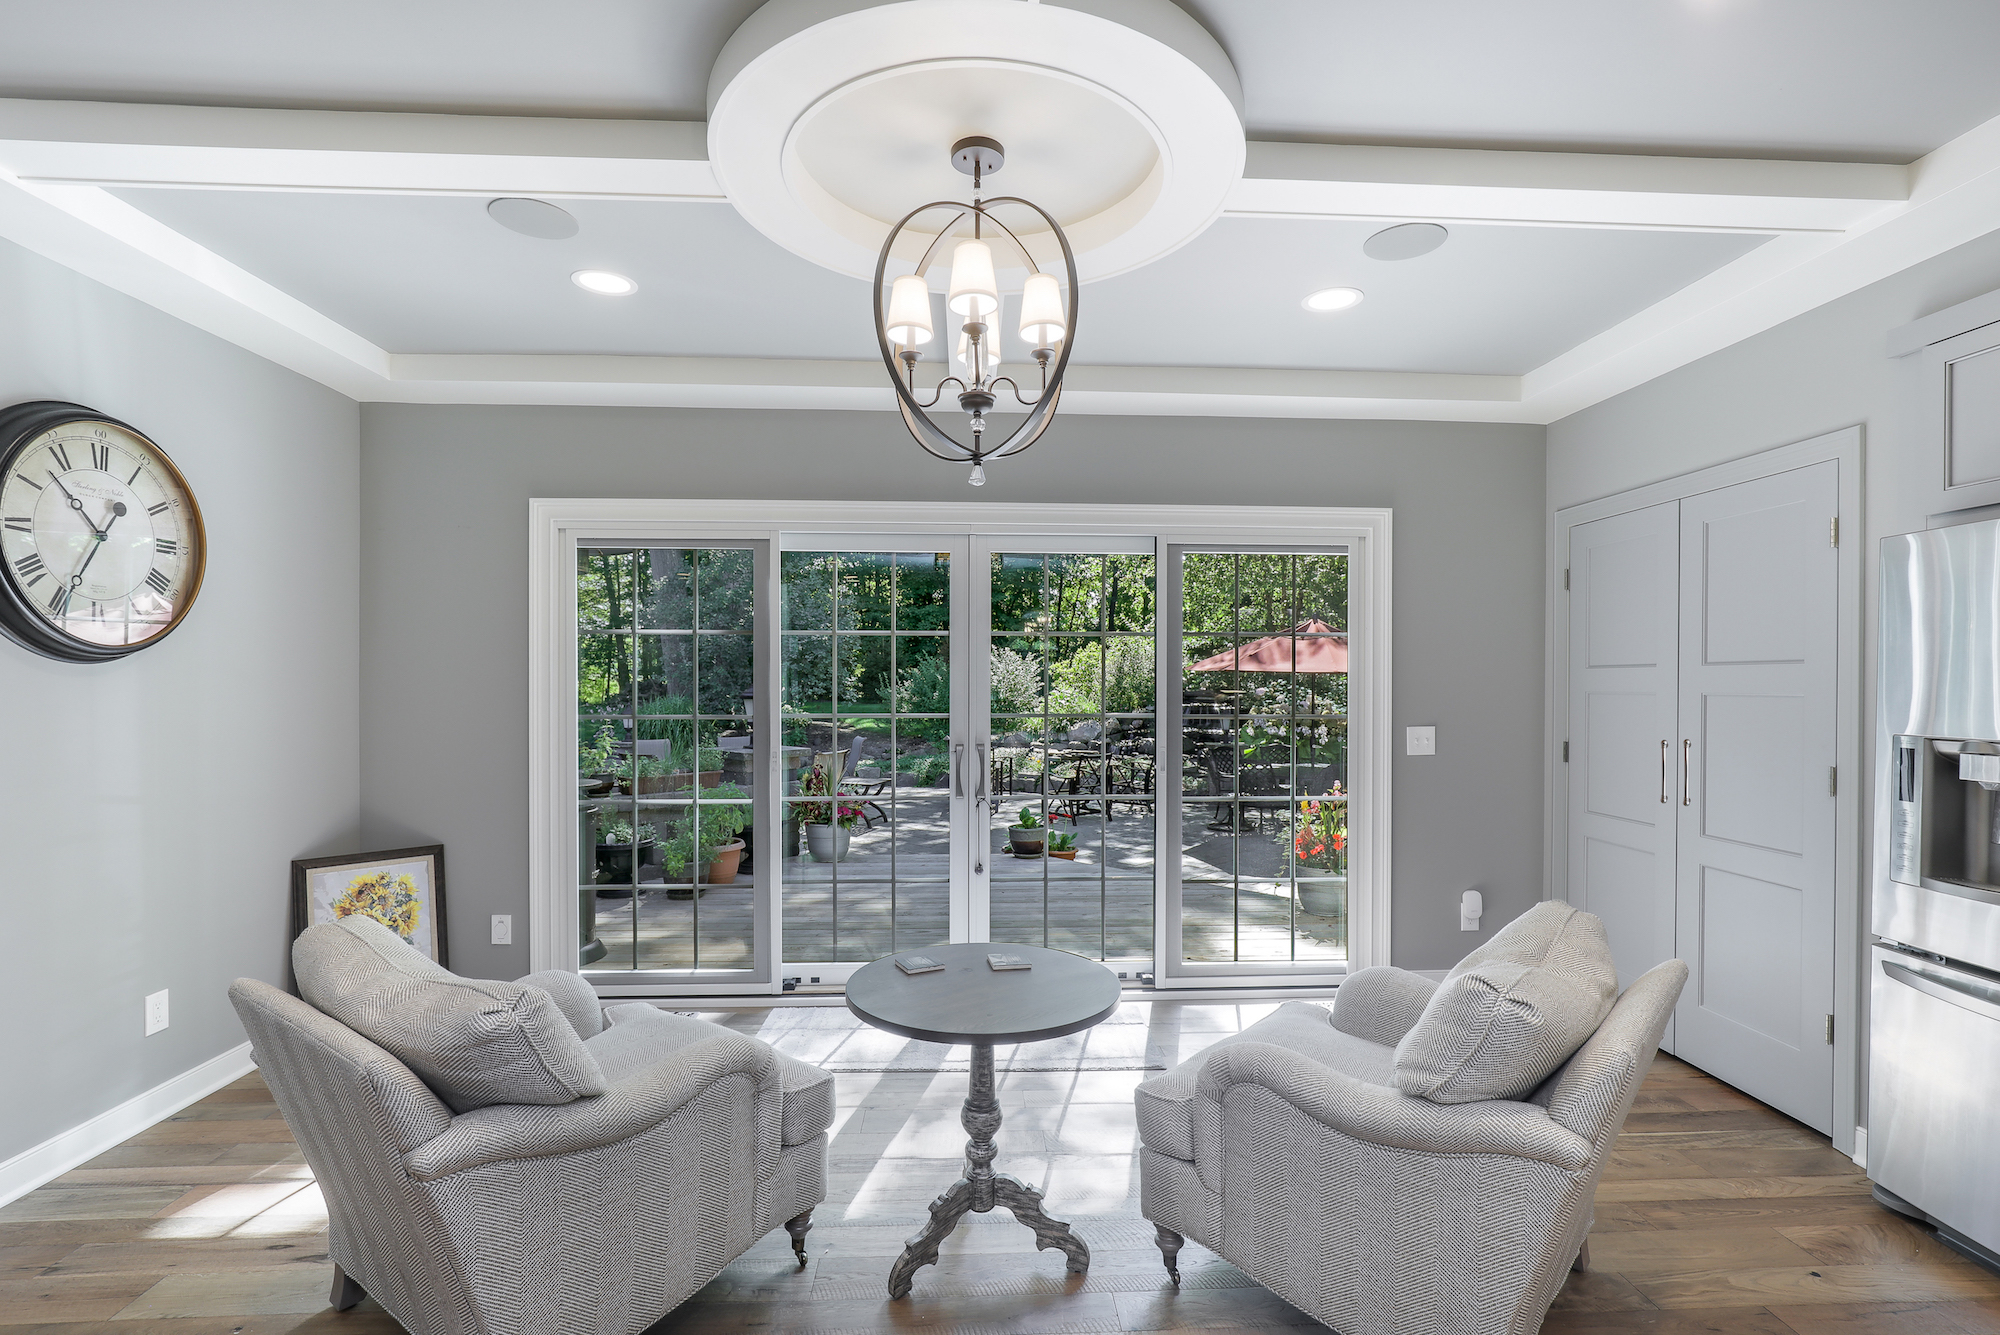 sitting area of custom home with chairs facing outdoor area custom lighting fixture above